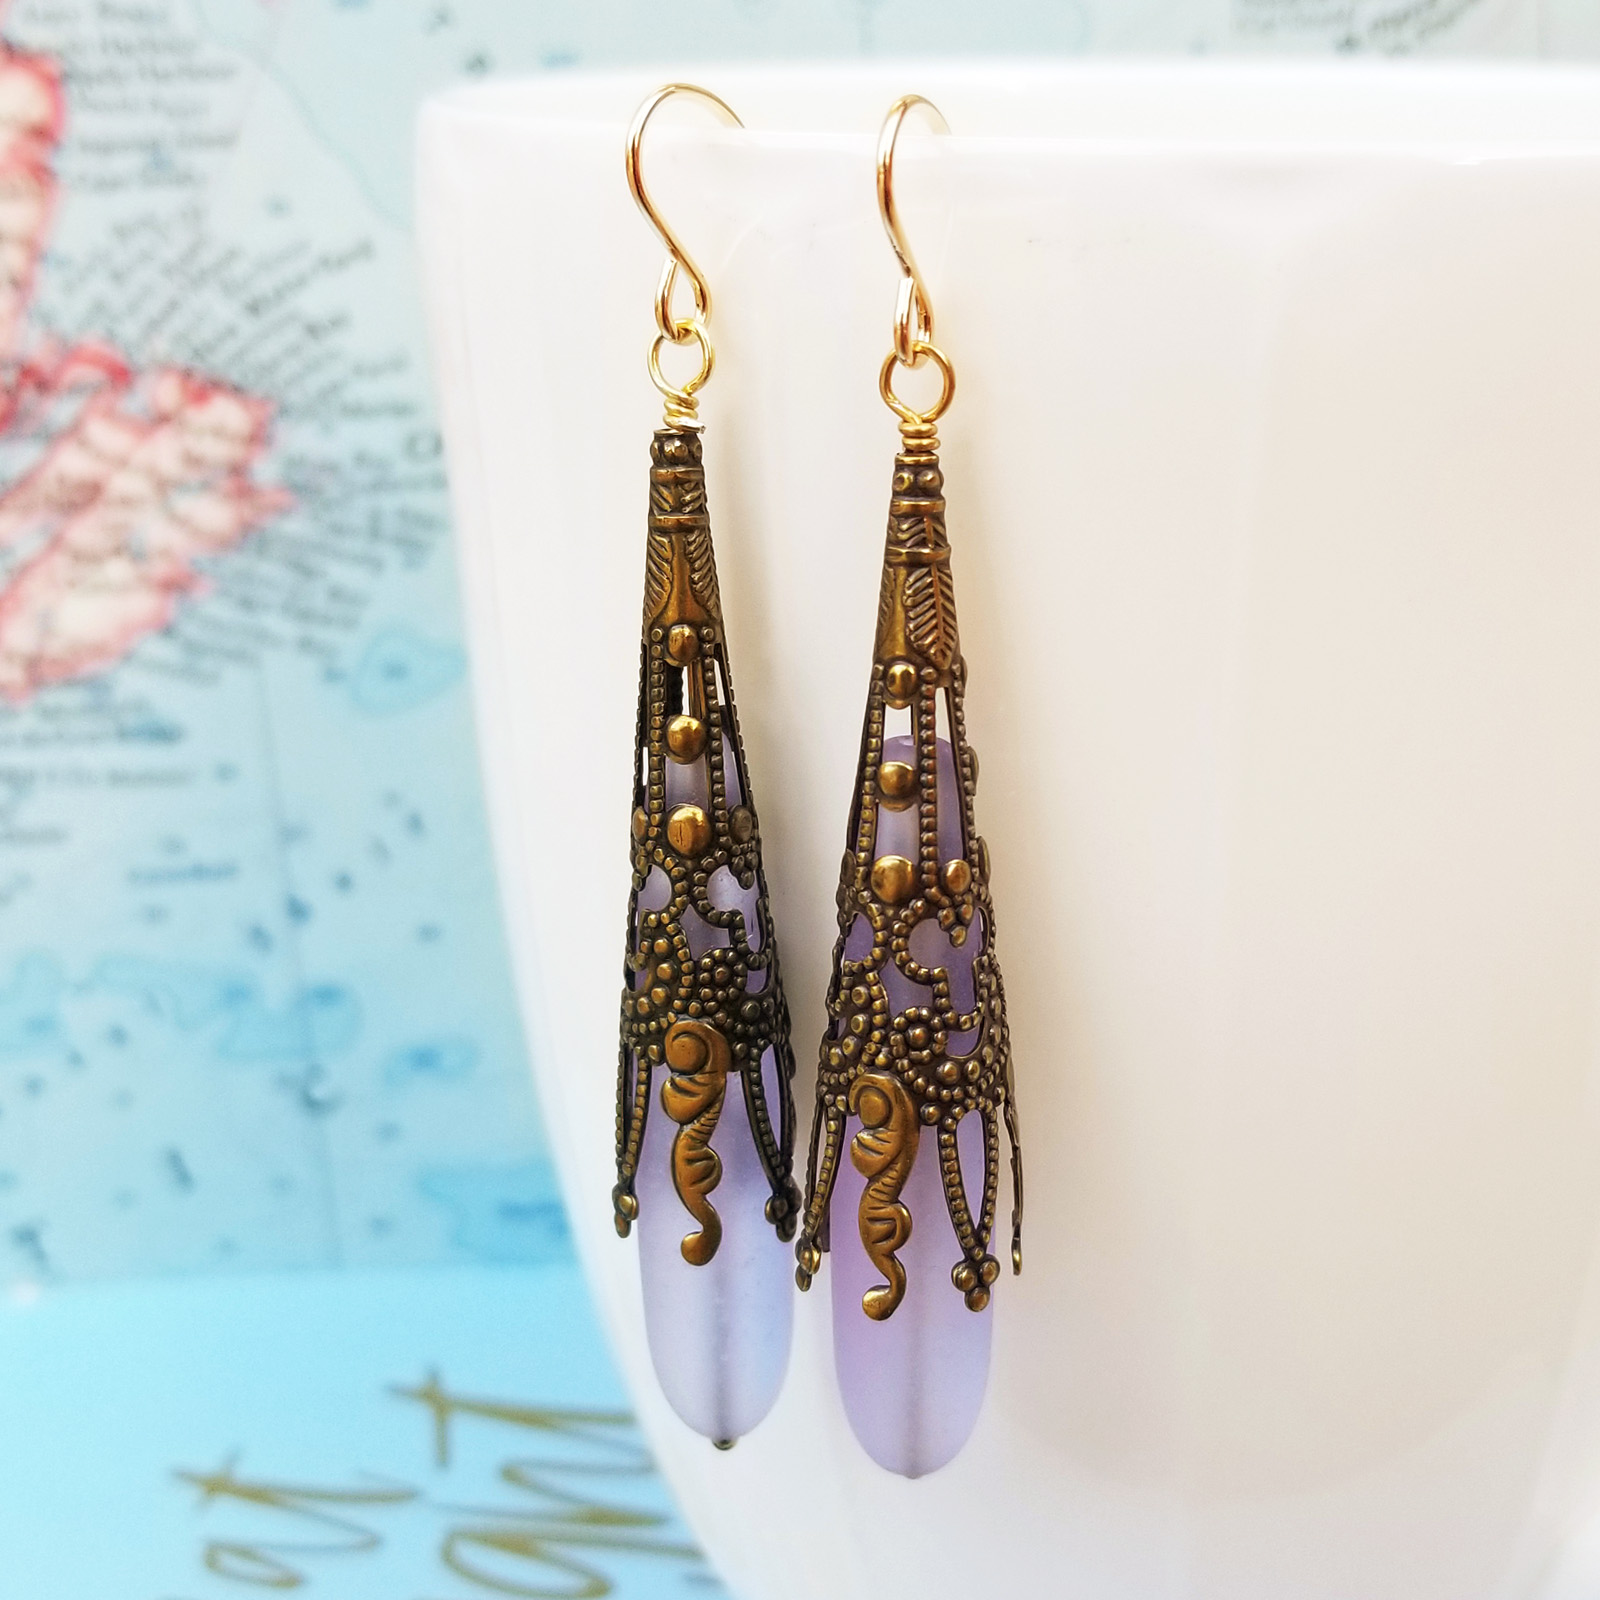 Lavender Call Me Vintage Sea Glass and Brass Earrings